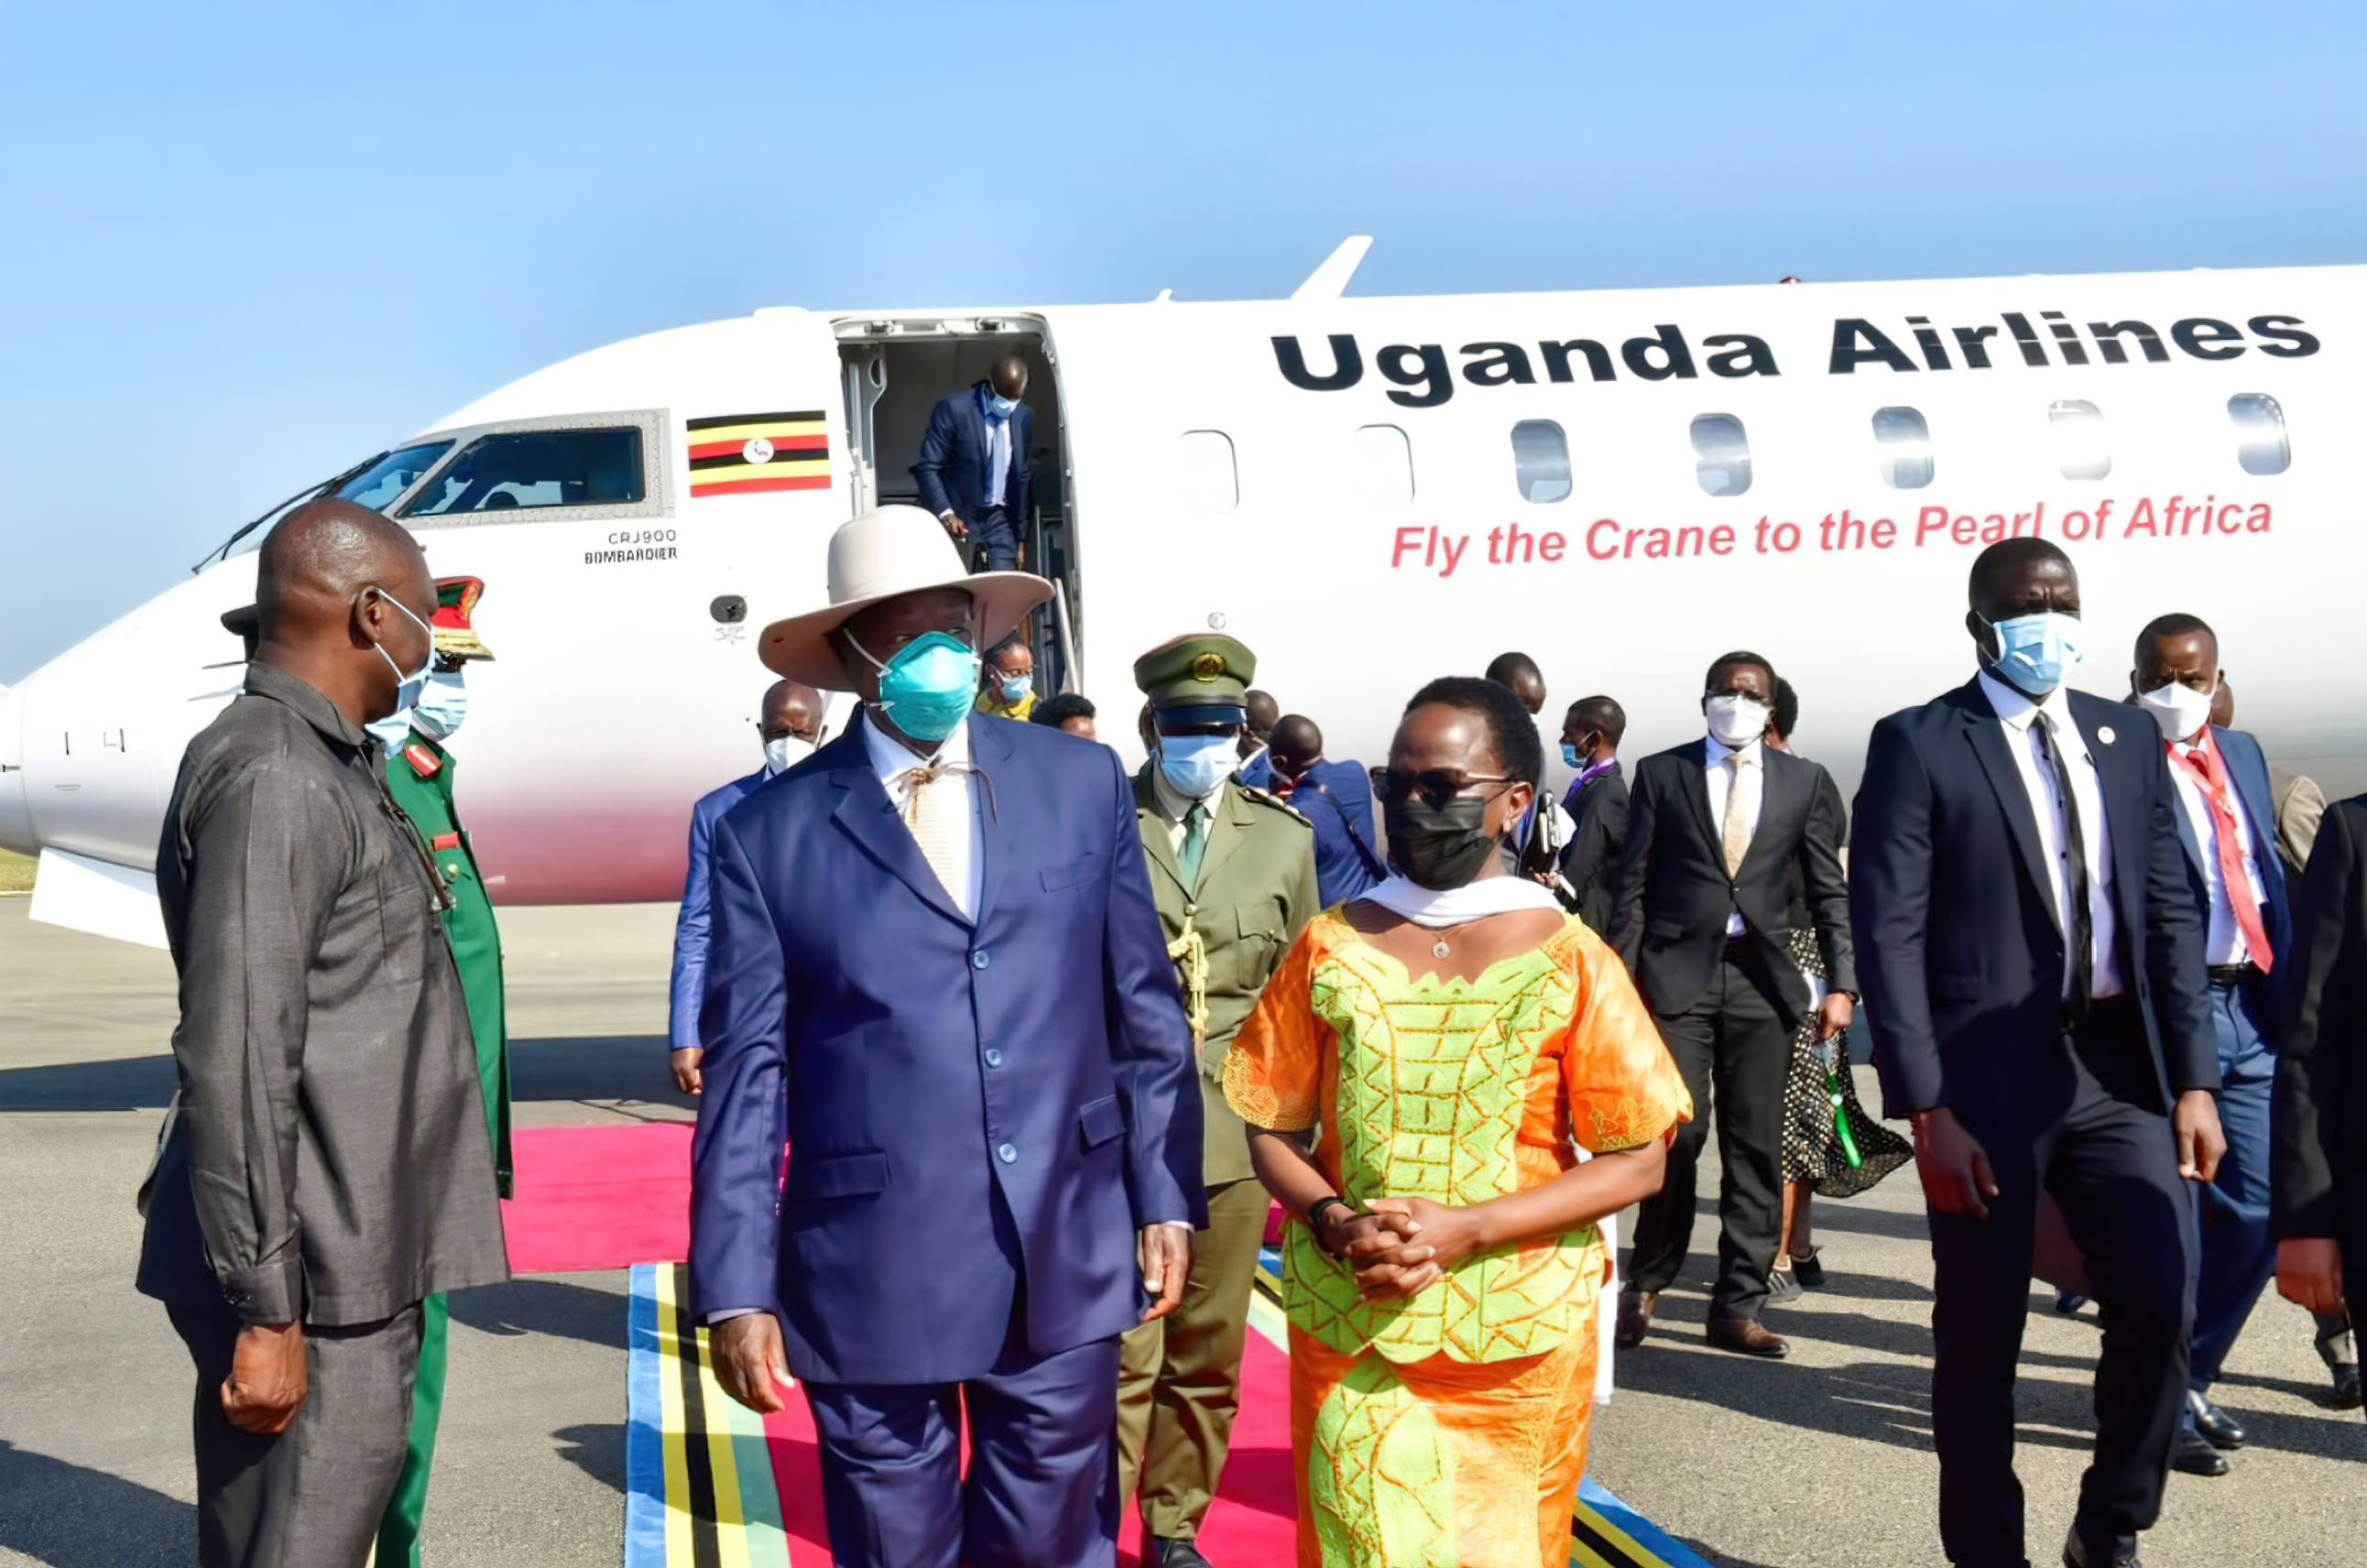 THE BRITISH GOVERNMENT HAS RESTRICTED TRAVELLERS FROM UGANDA